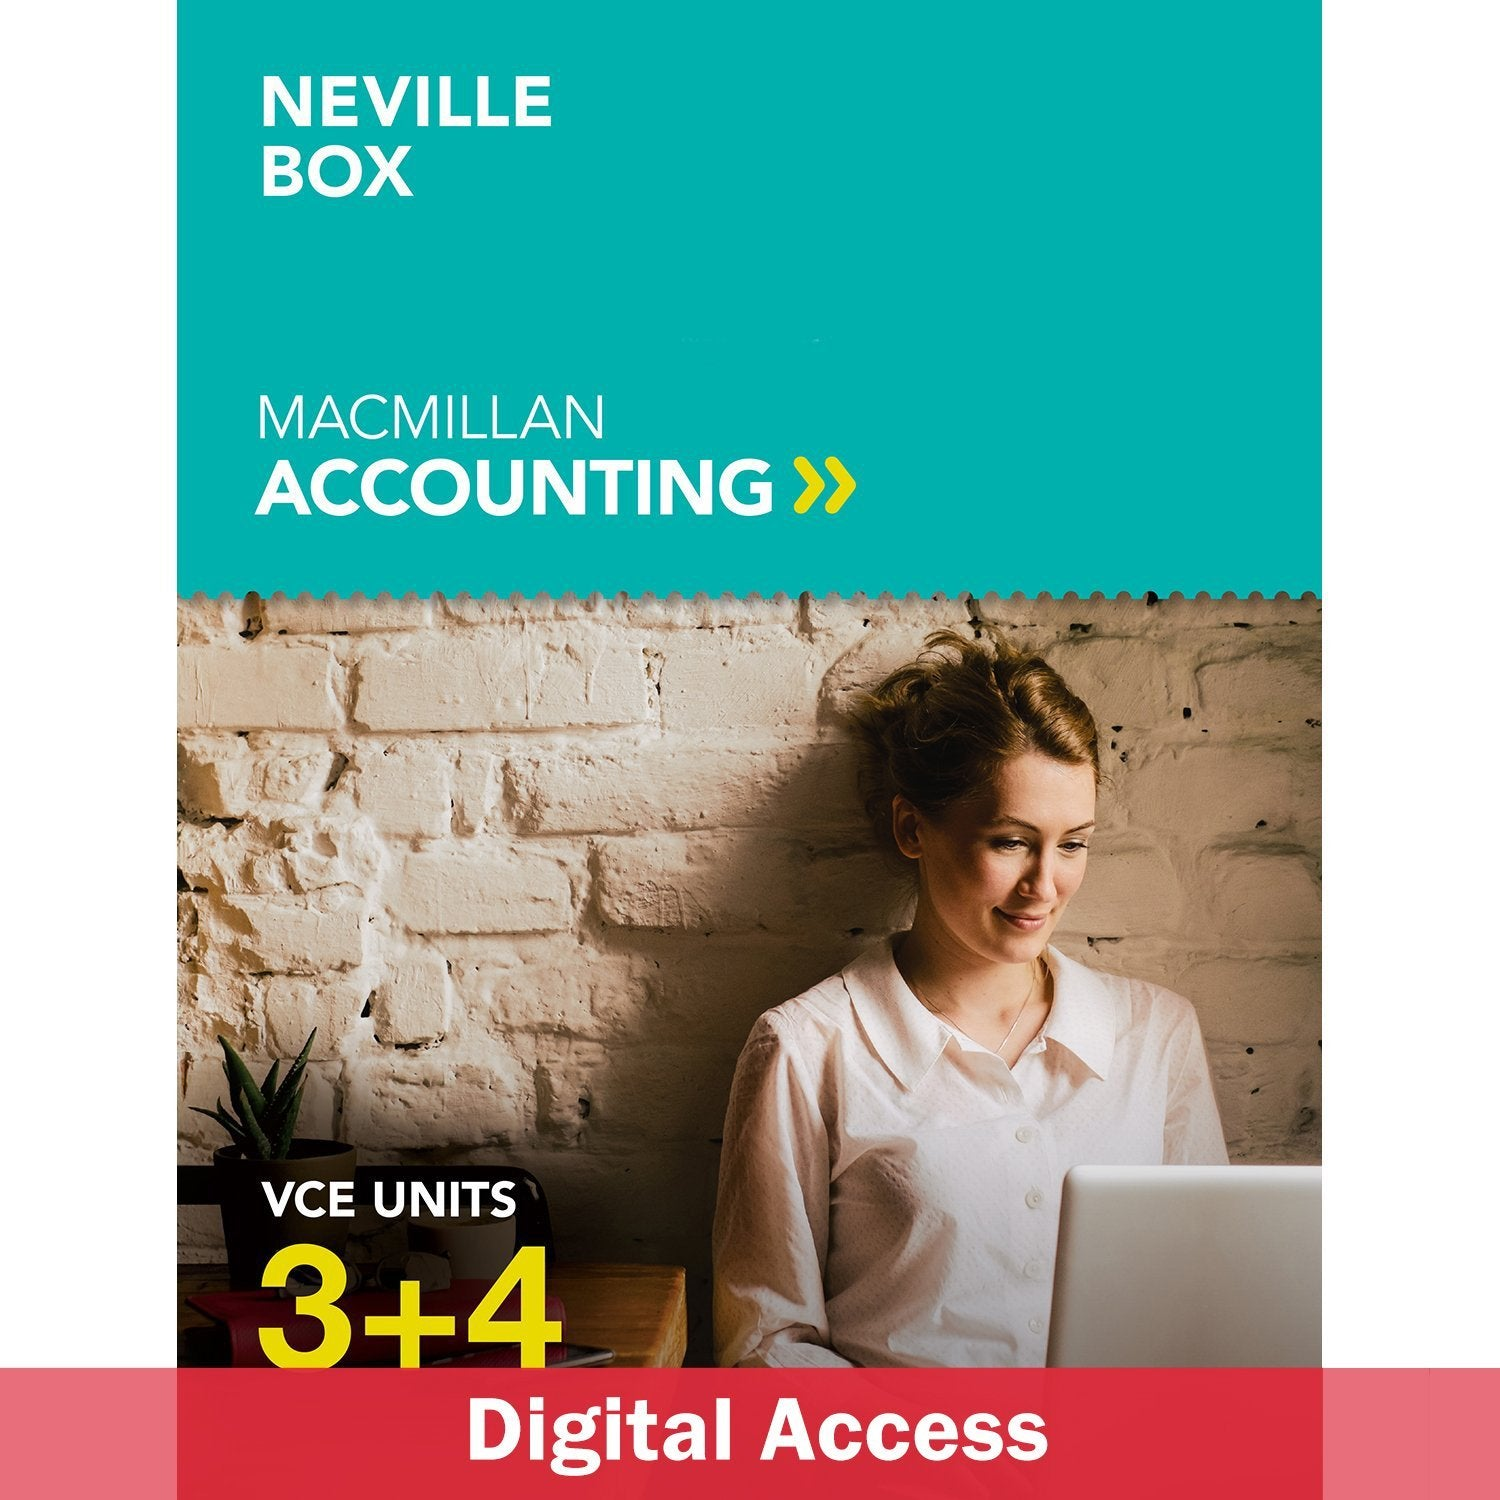 Macmillan Accounting VCE Units 3&4 Student Book 1-Year Reactivation Code